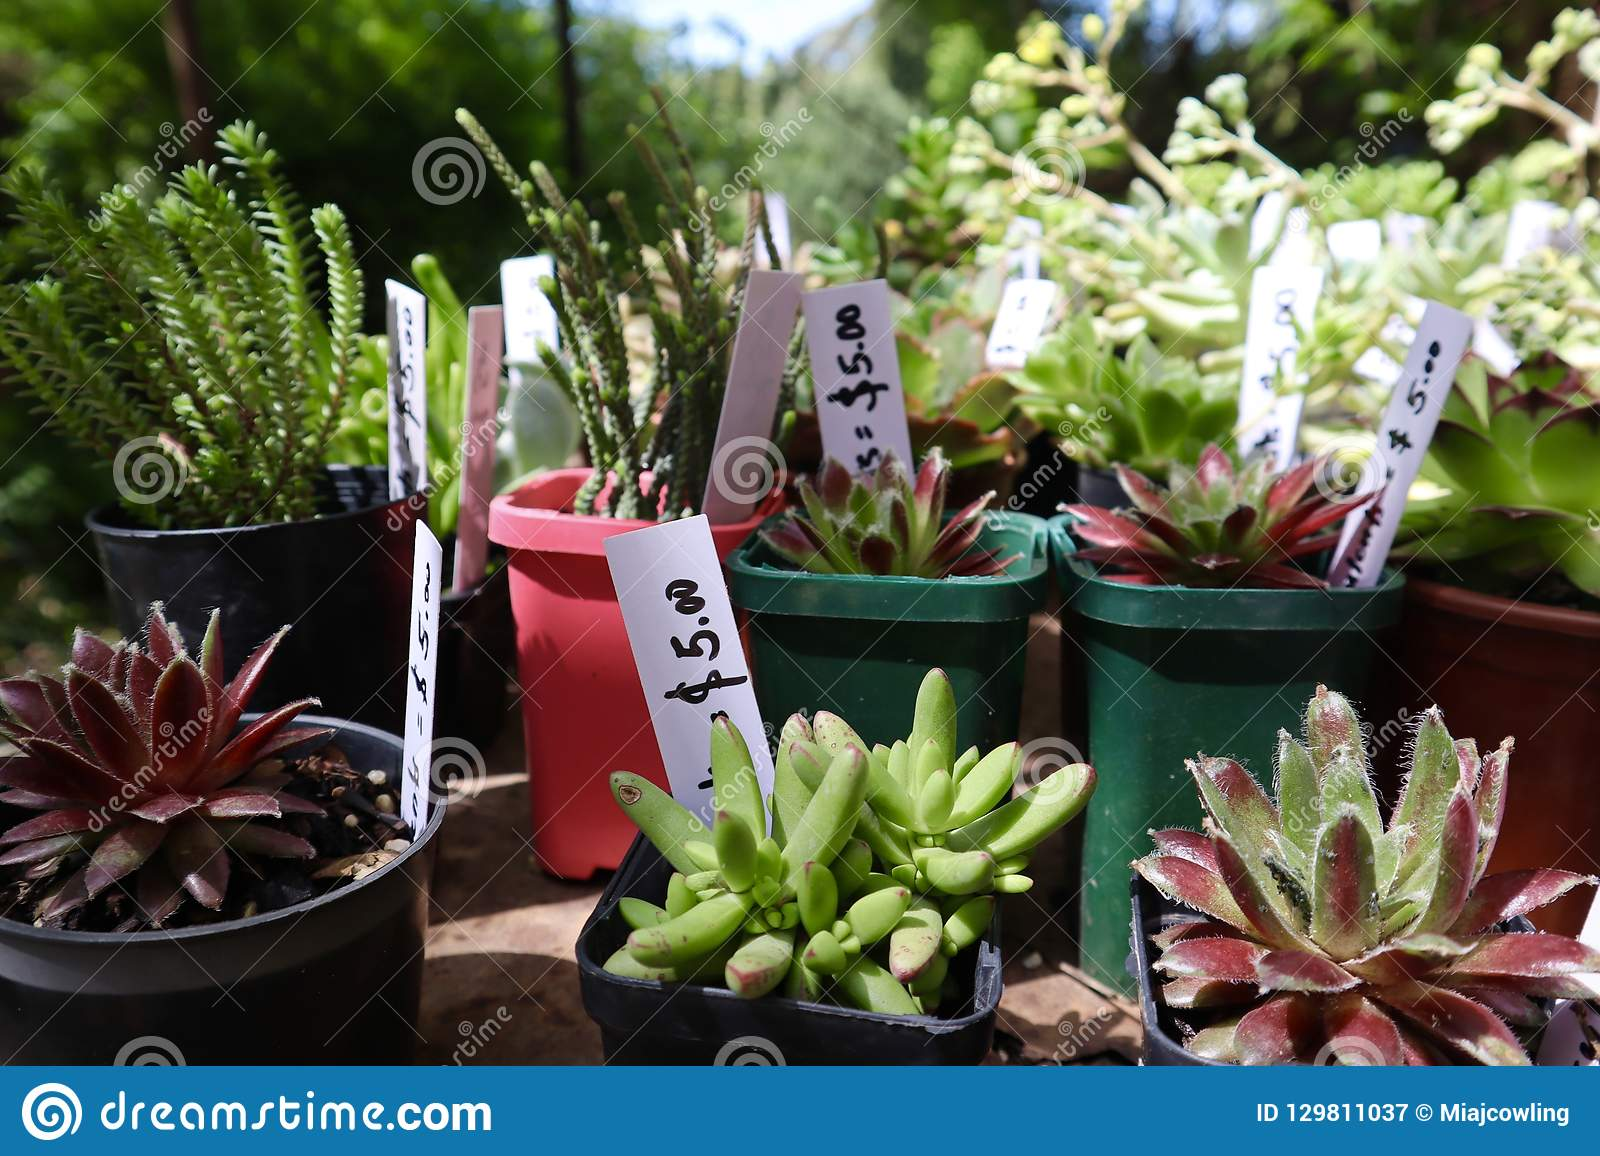 Succulents Growing In Pots At Market Stall Stock Image Image Of